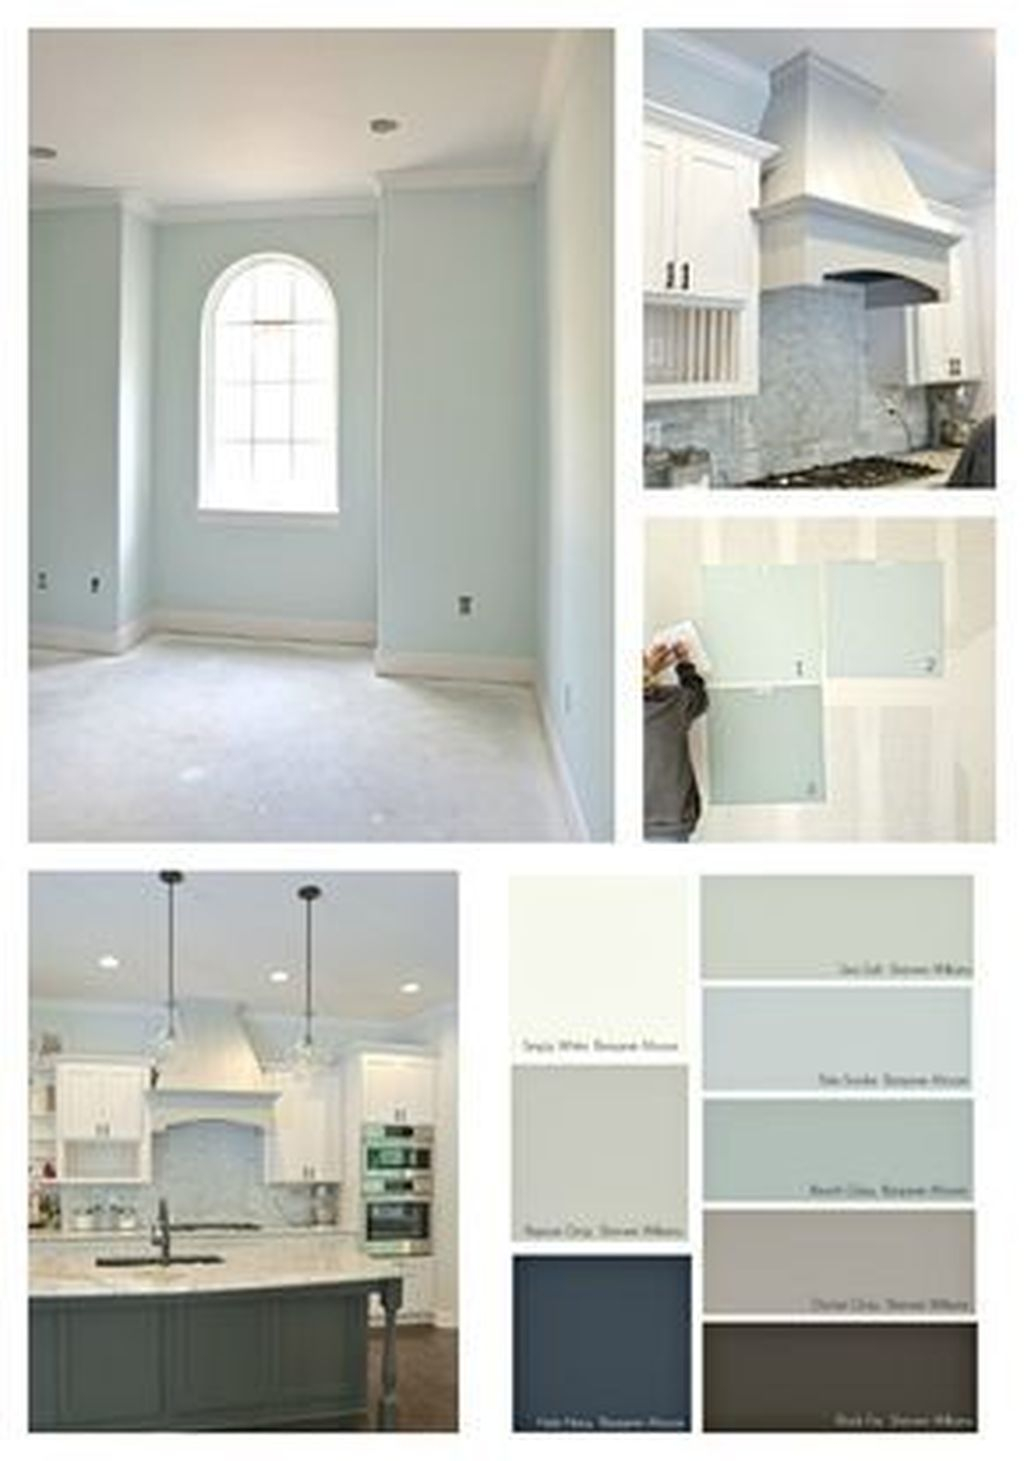 Adorable Home Interior Remodel Design Ideas To Try Asap 17